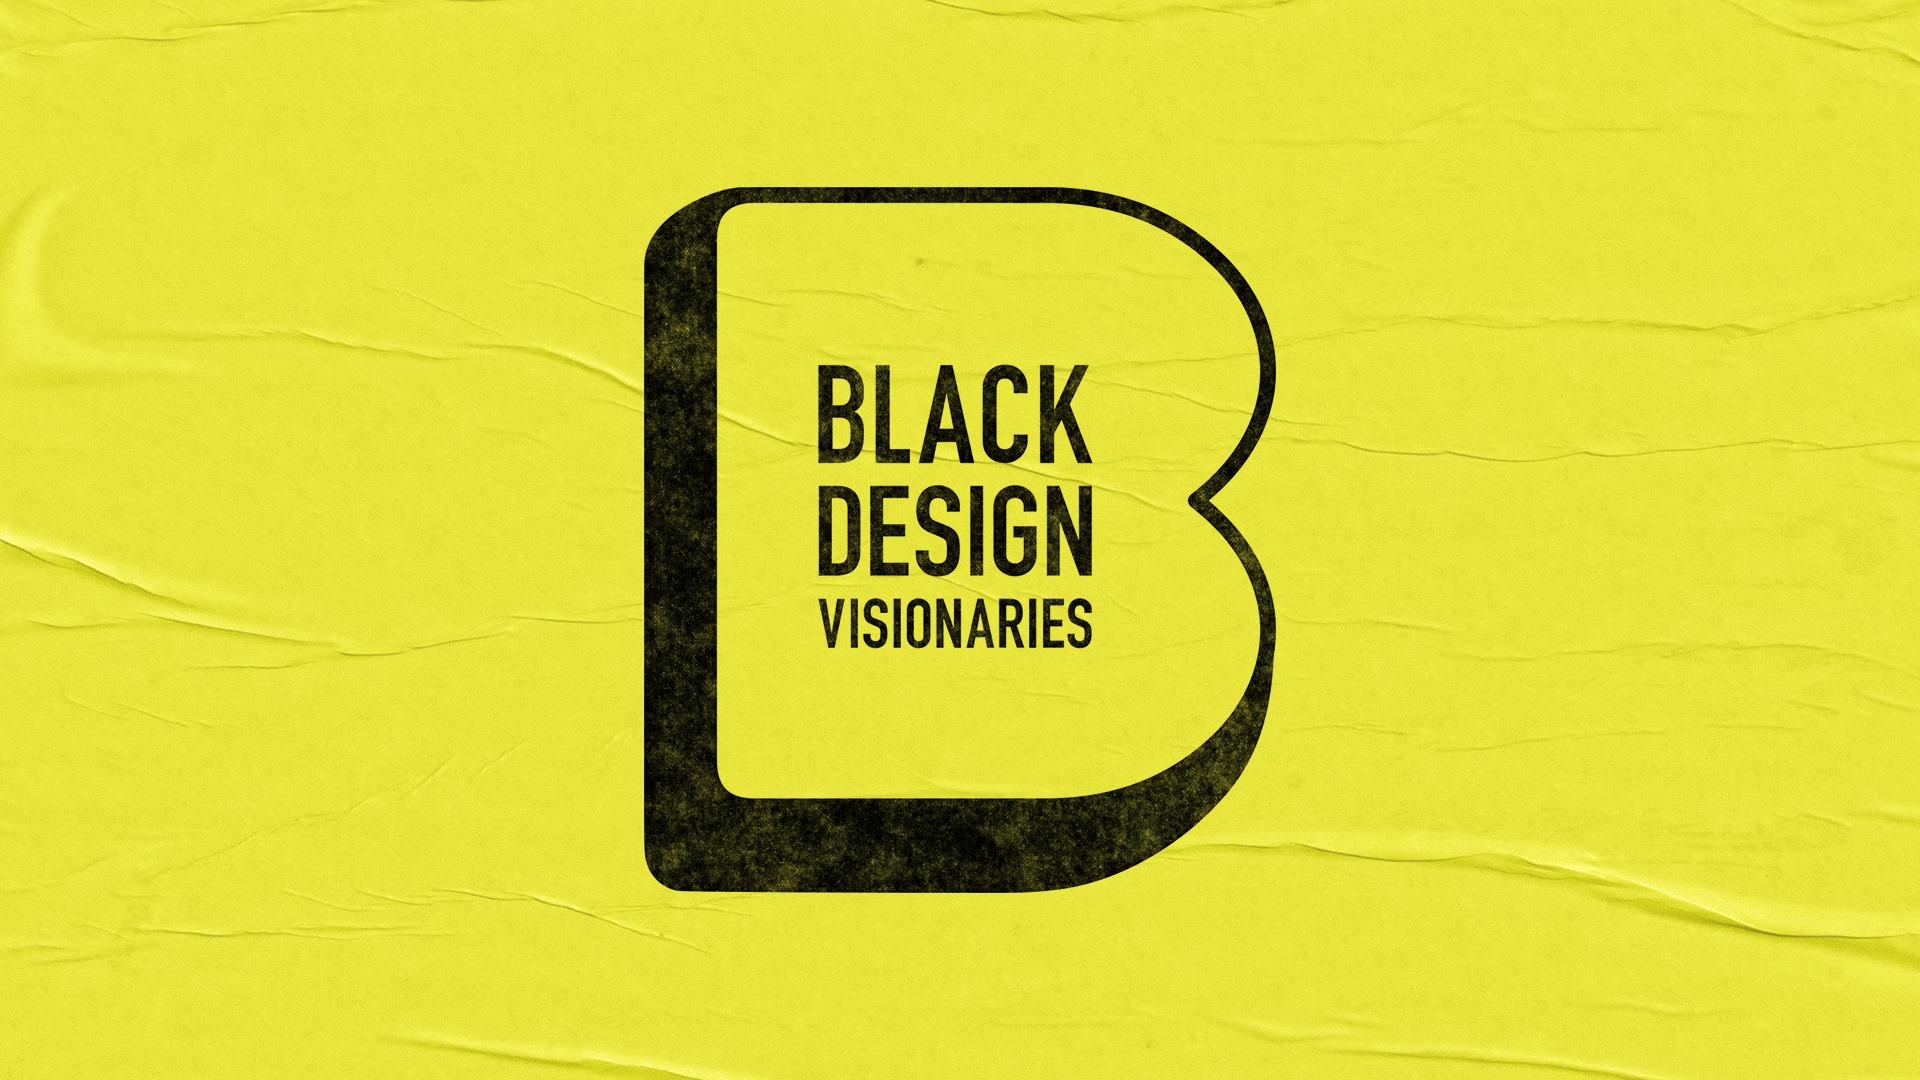 Applications for the Black Design Visionaries award will be accepted until next month